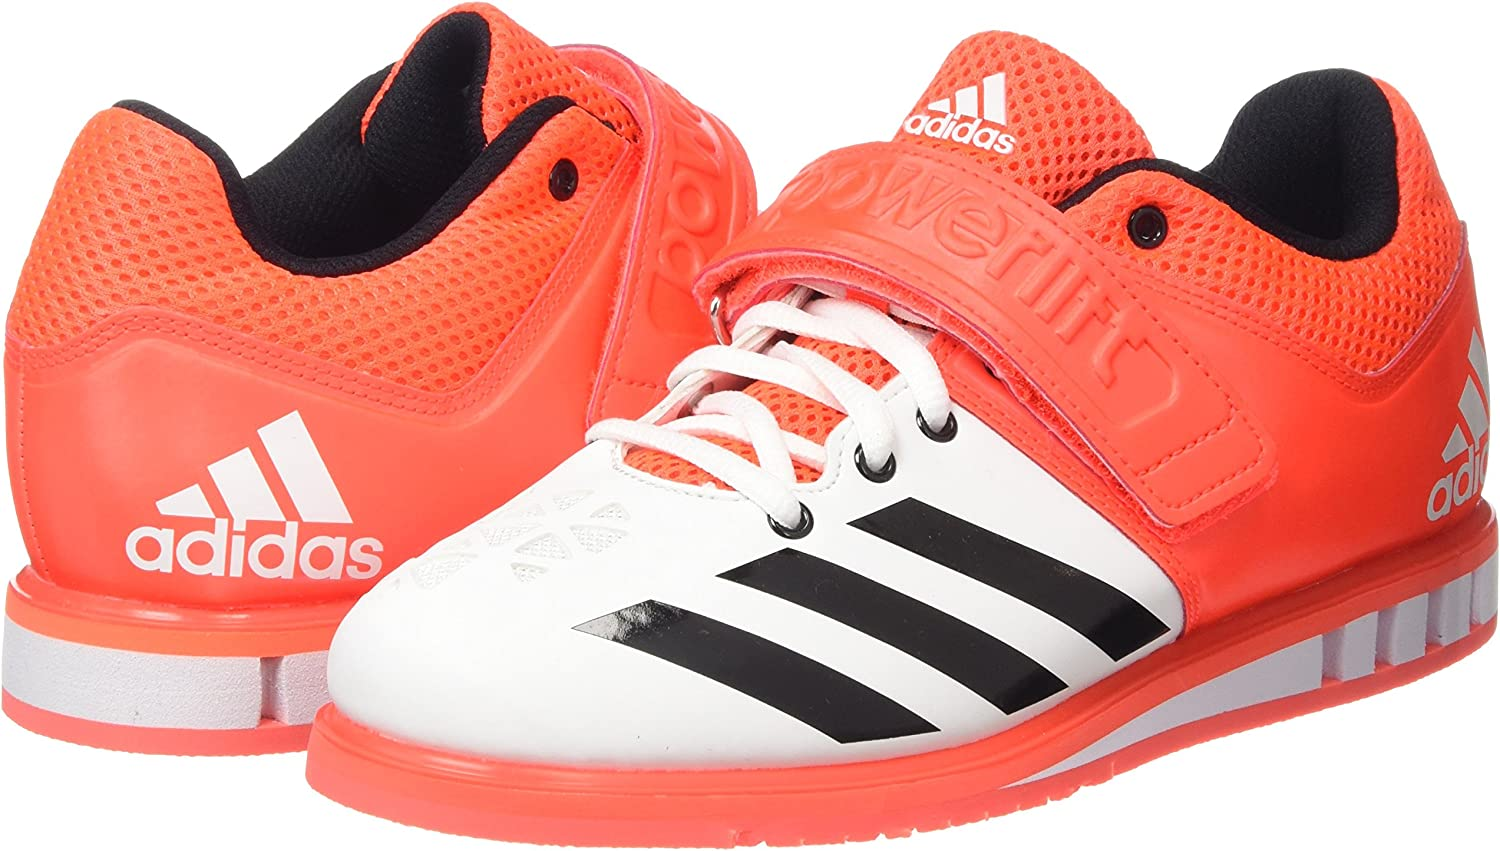 adidas Powerlift 3, Chaussures Multisport Indoor Mixte Adulte